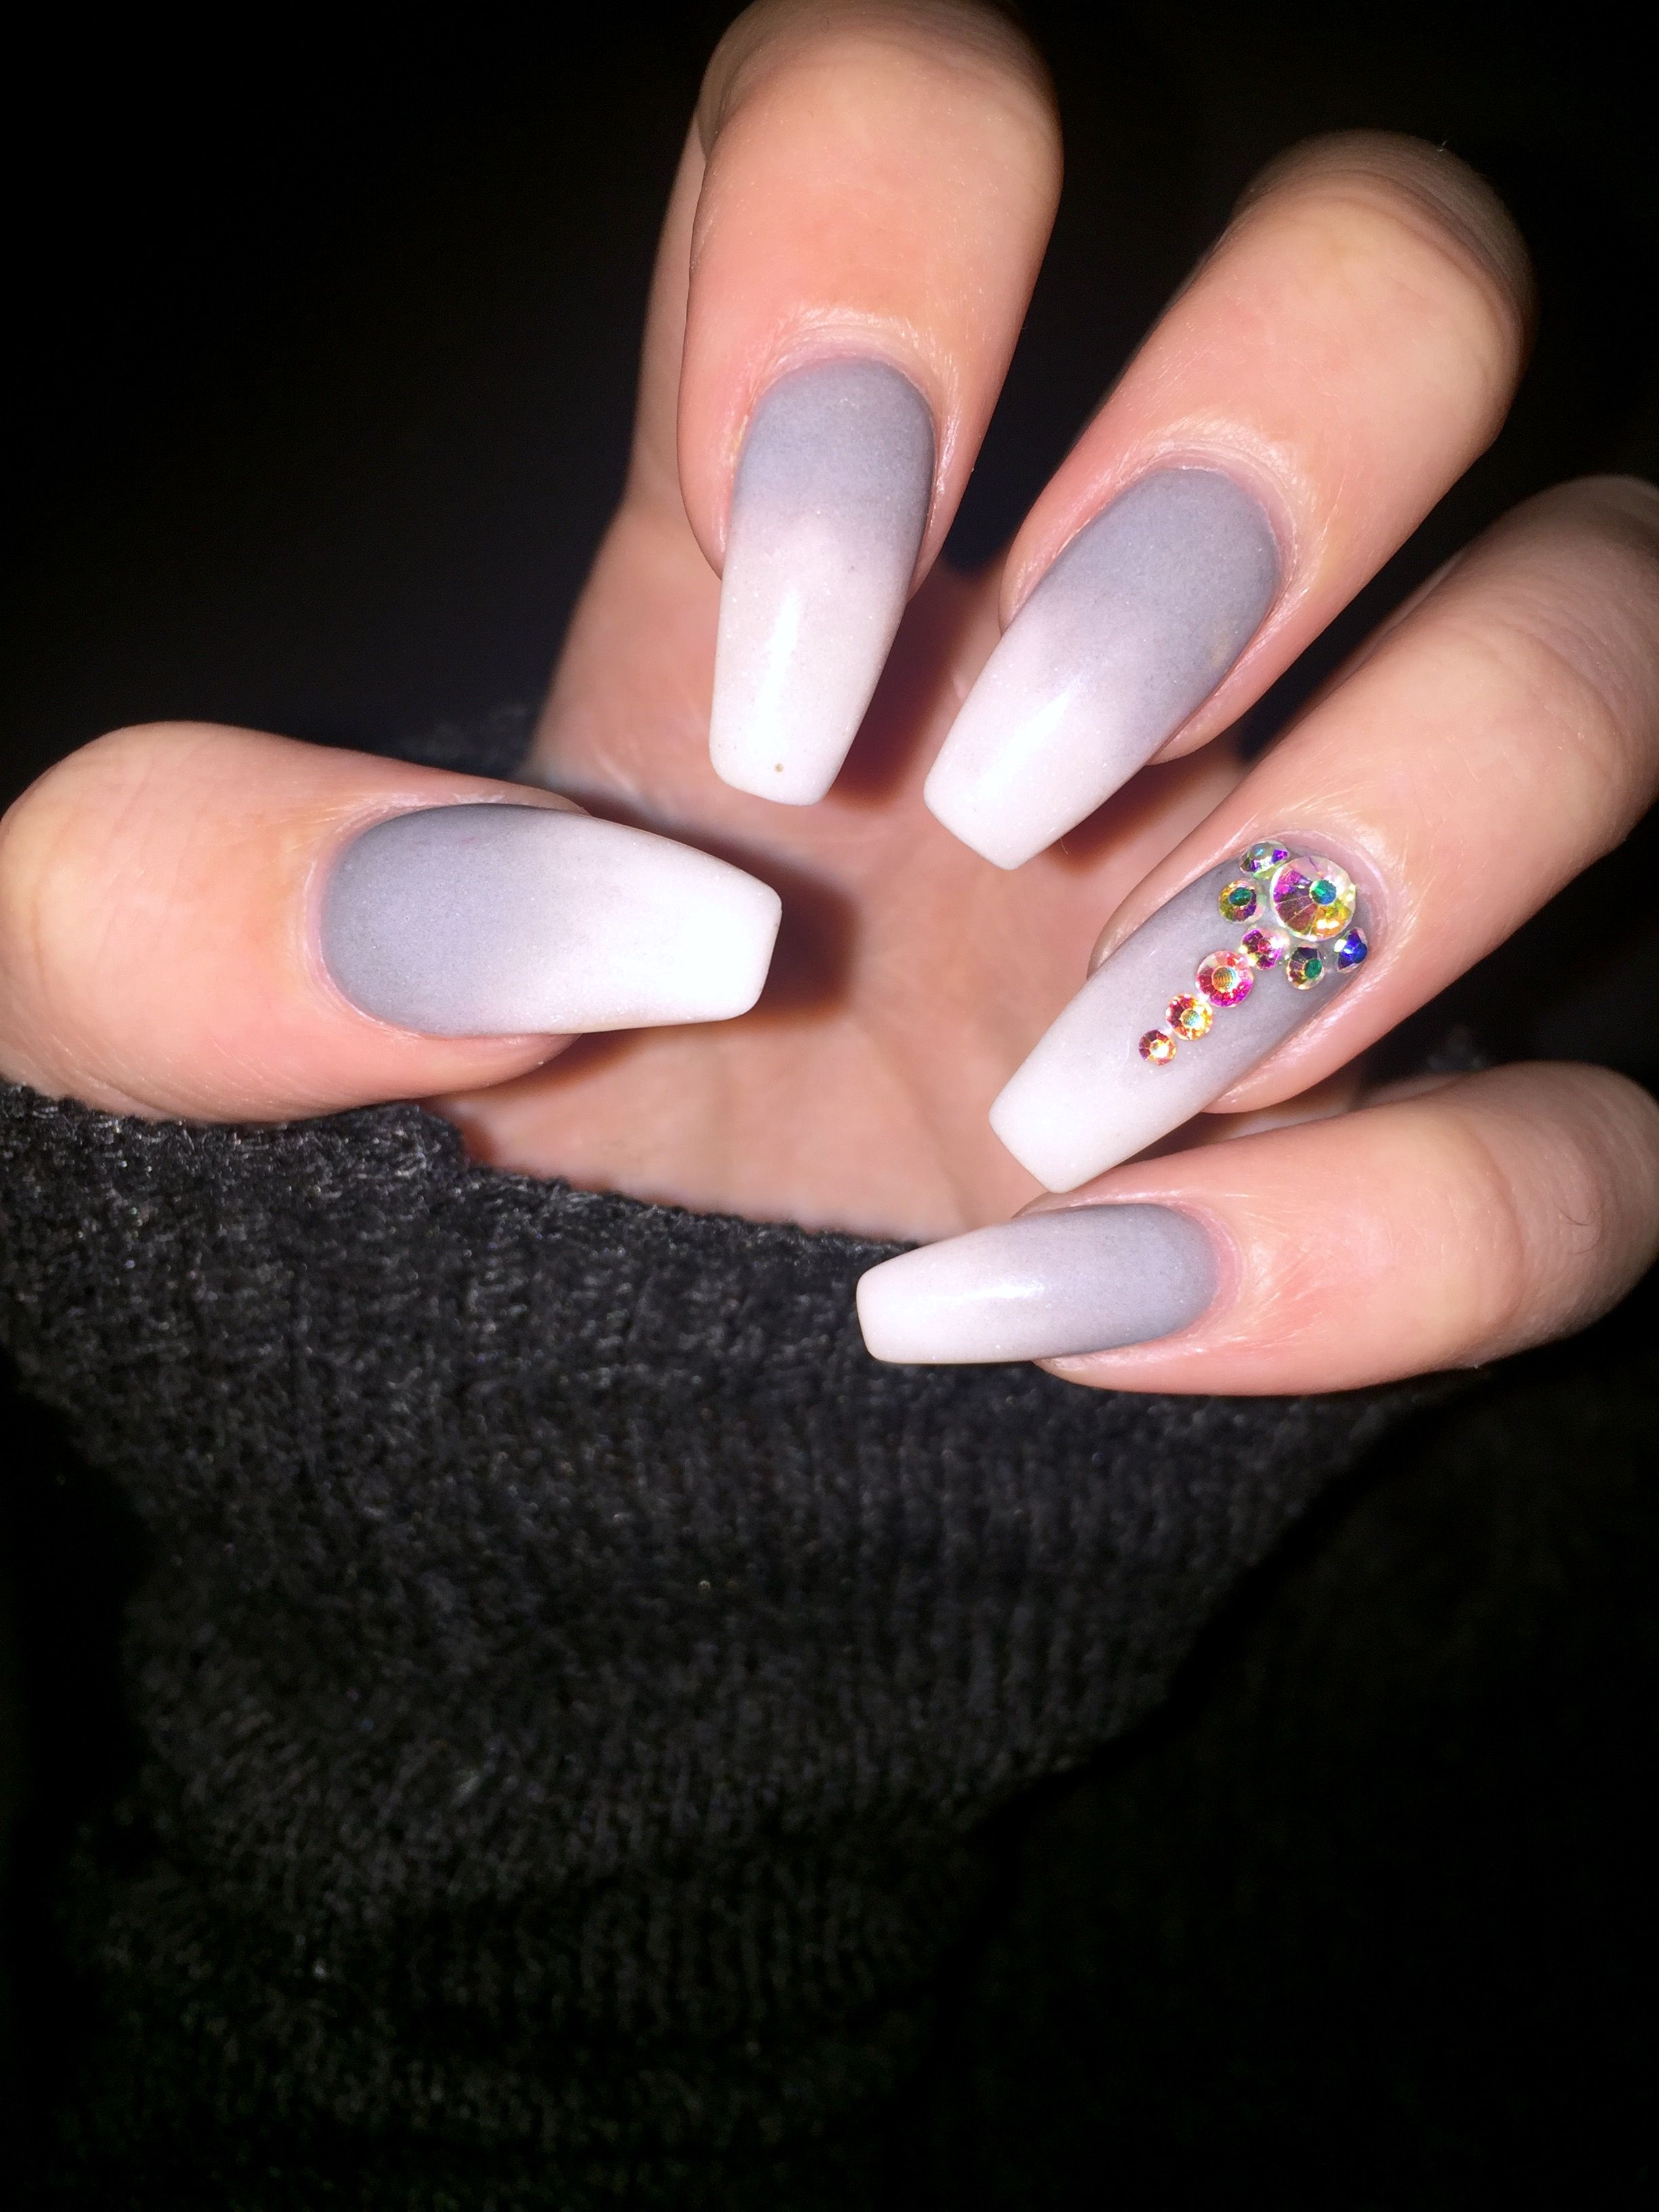 Grey Ombre Coffin Nails With Bling Greynails Ombrenails Ombre Nails Nails Pink Ombre Nails